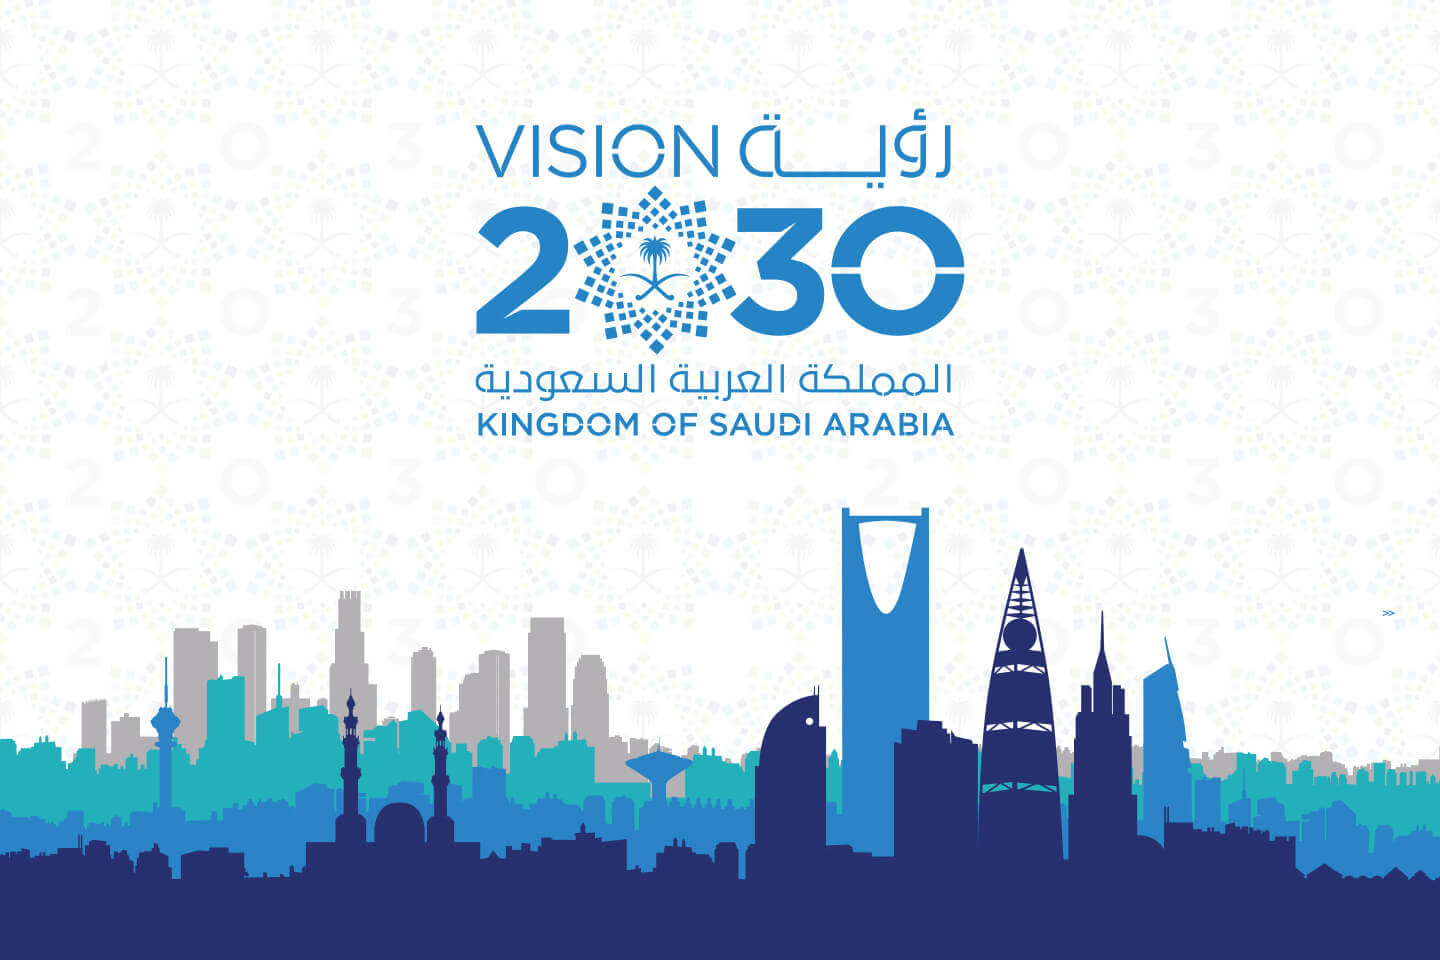 saudi vision 2030 - economic development